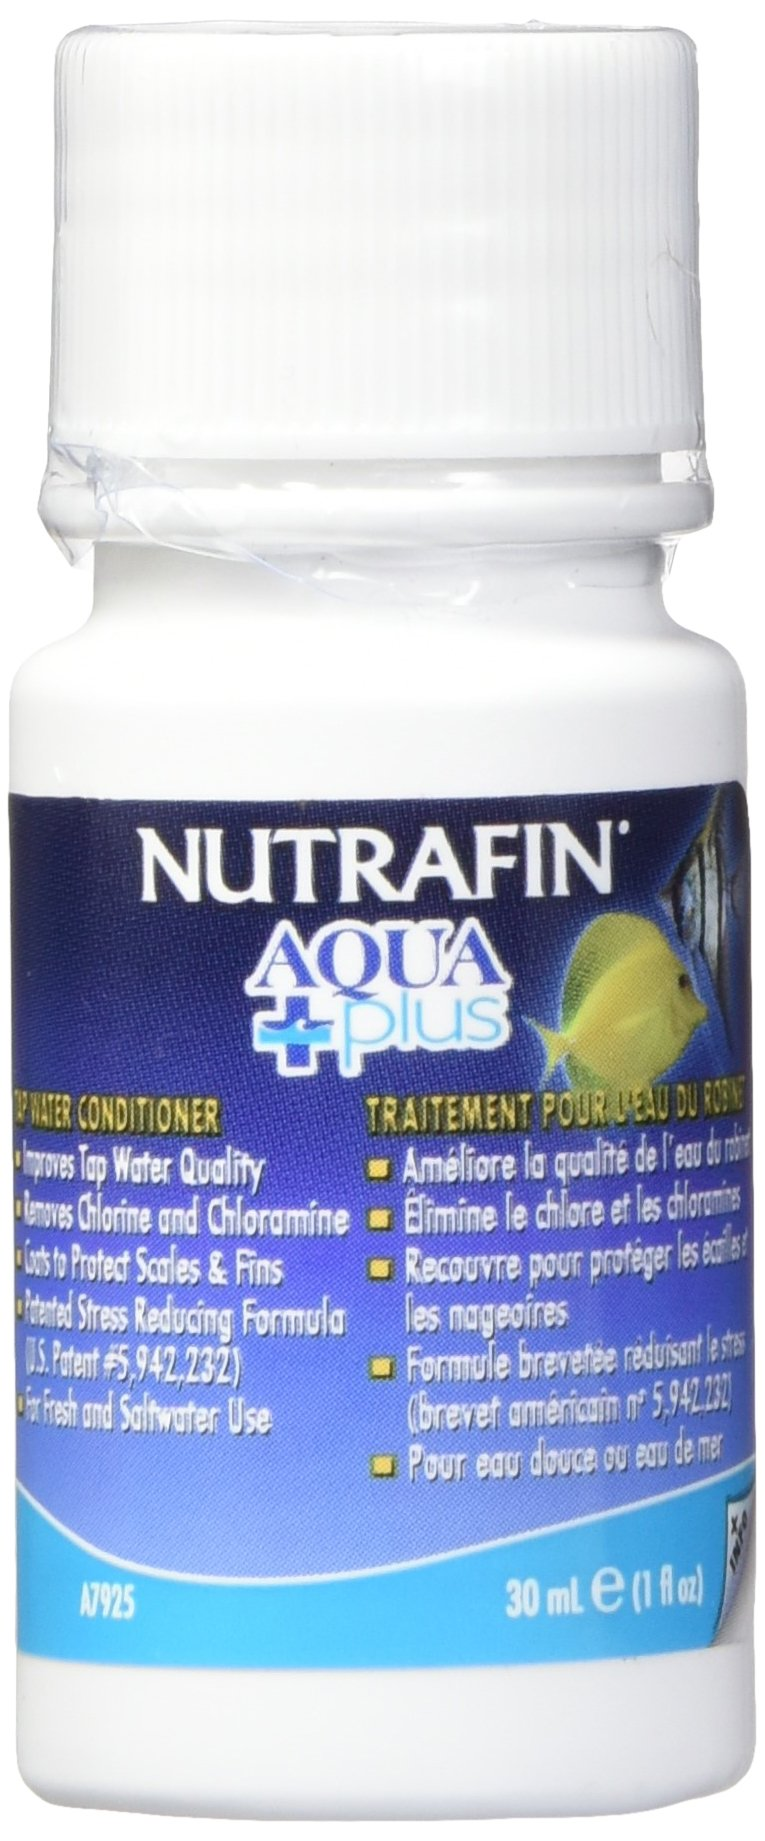 Nutrafin Aqua Plus Tap Water Conditioner, 1-Ounce